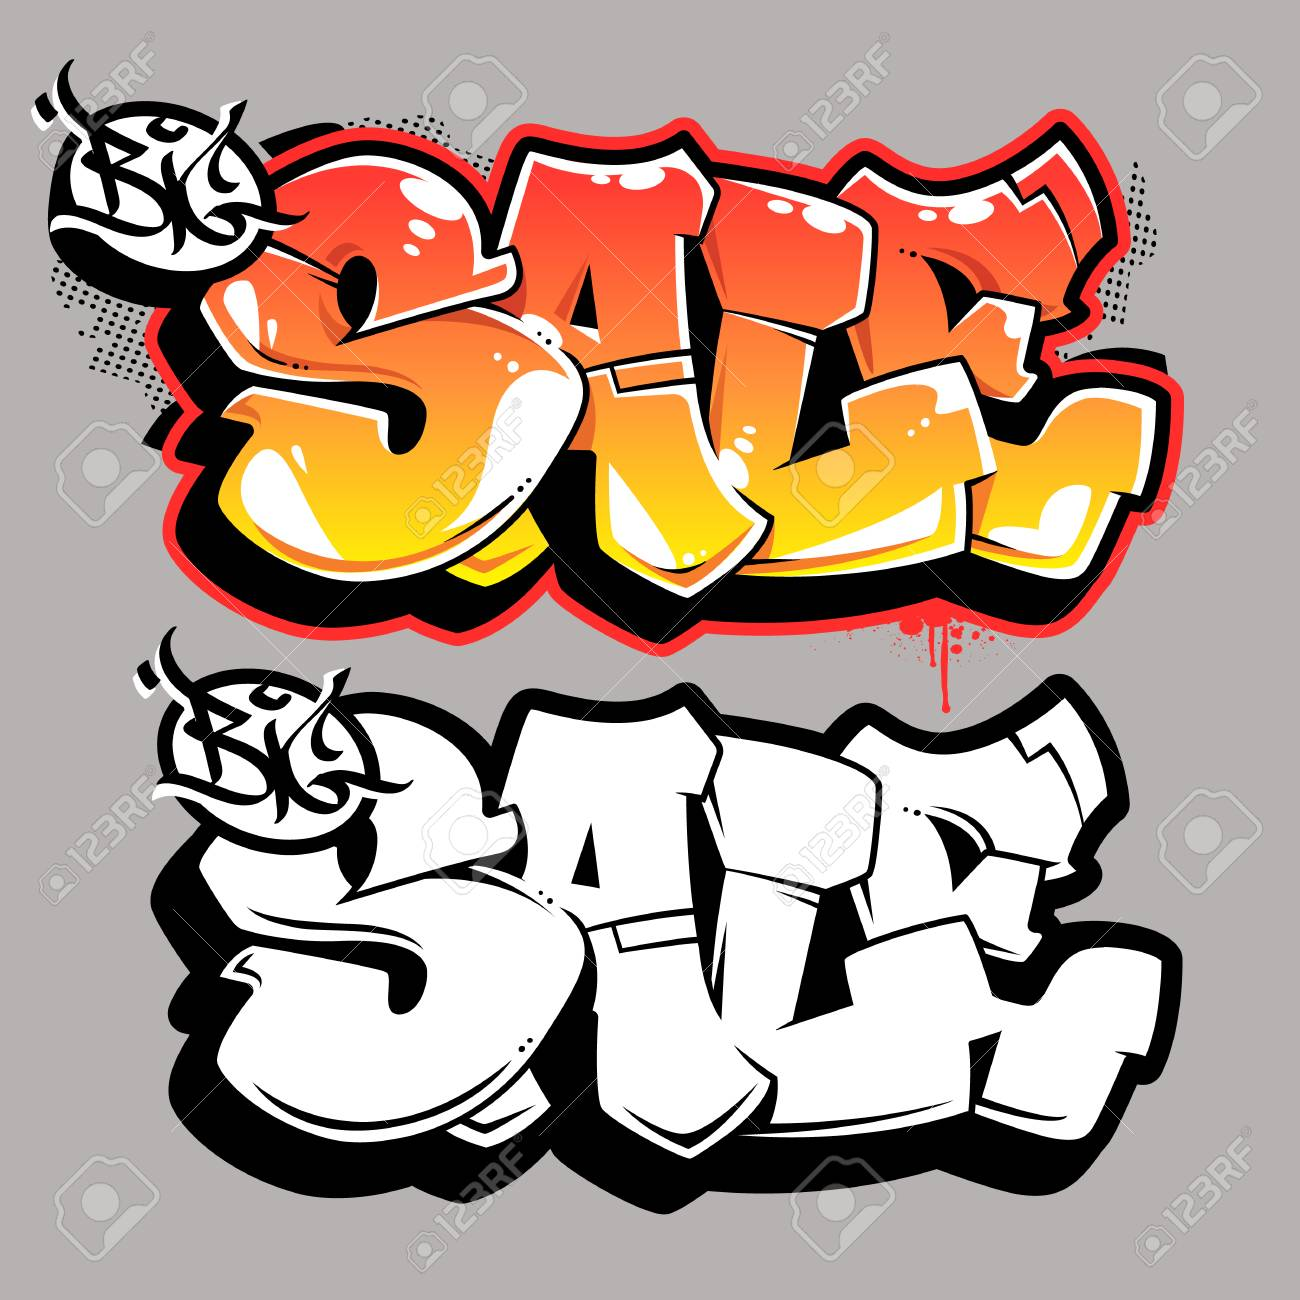 Big Sale Bubble Style Old School Graffiti Lettering On Grey Background